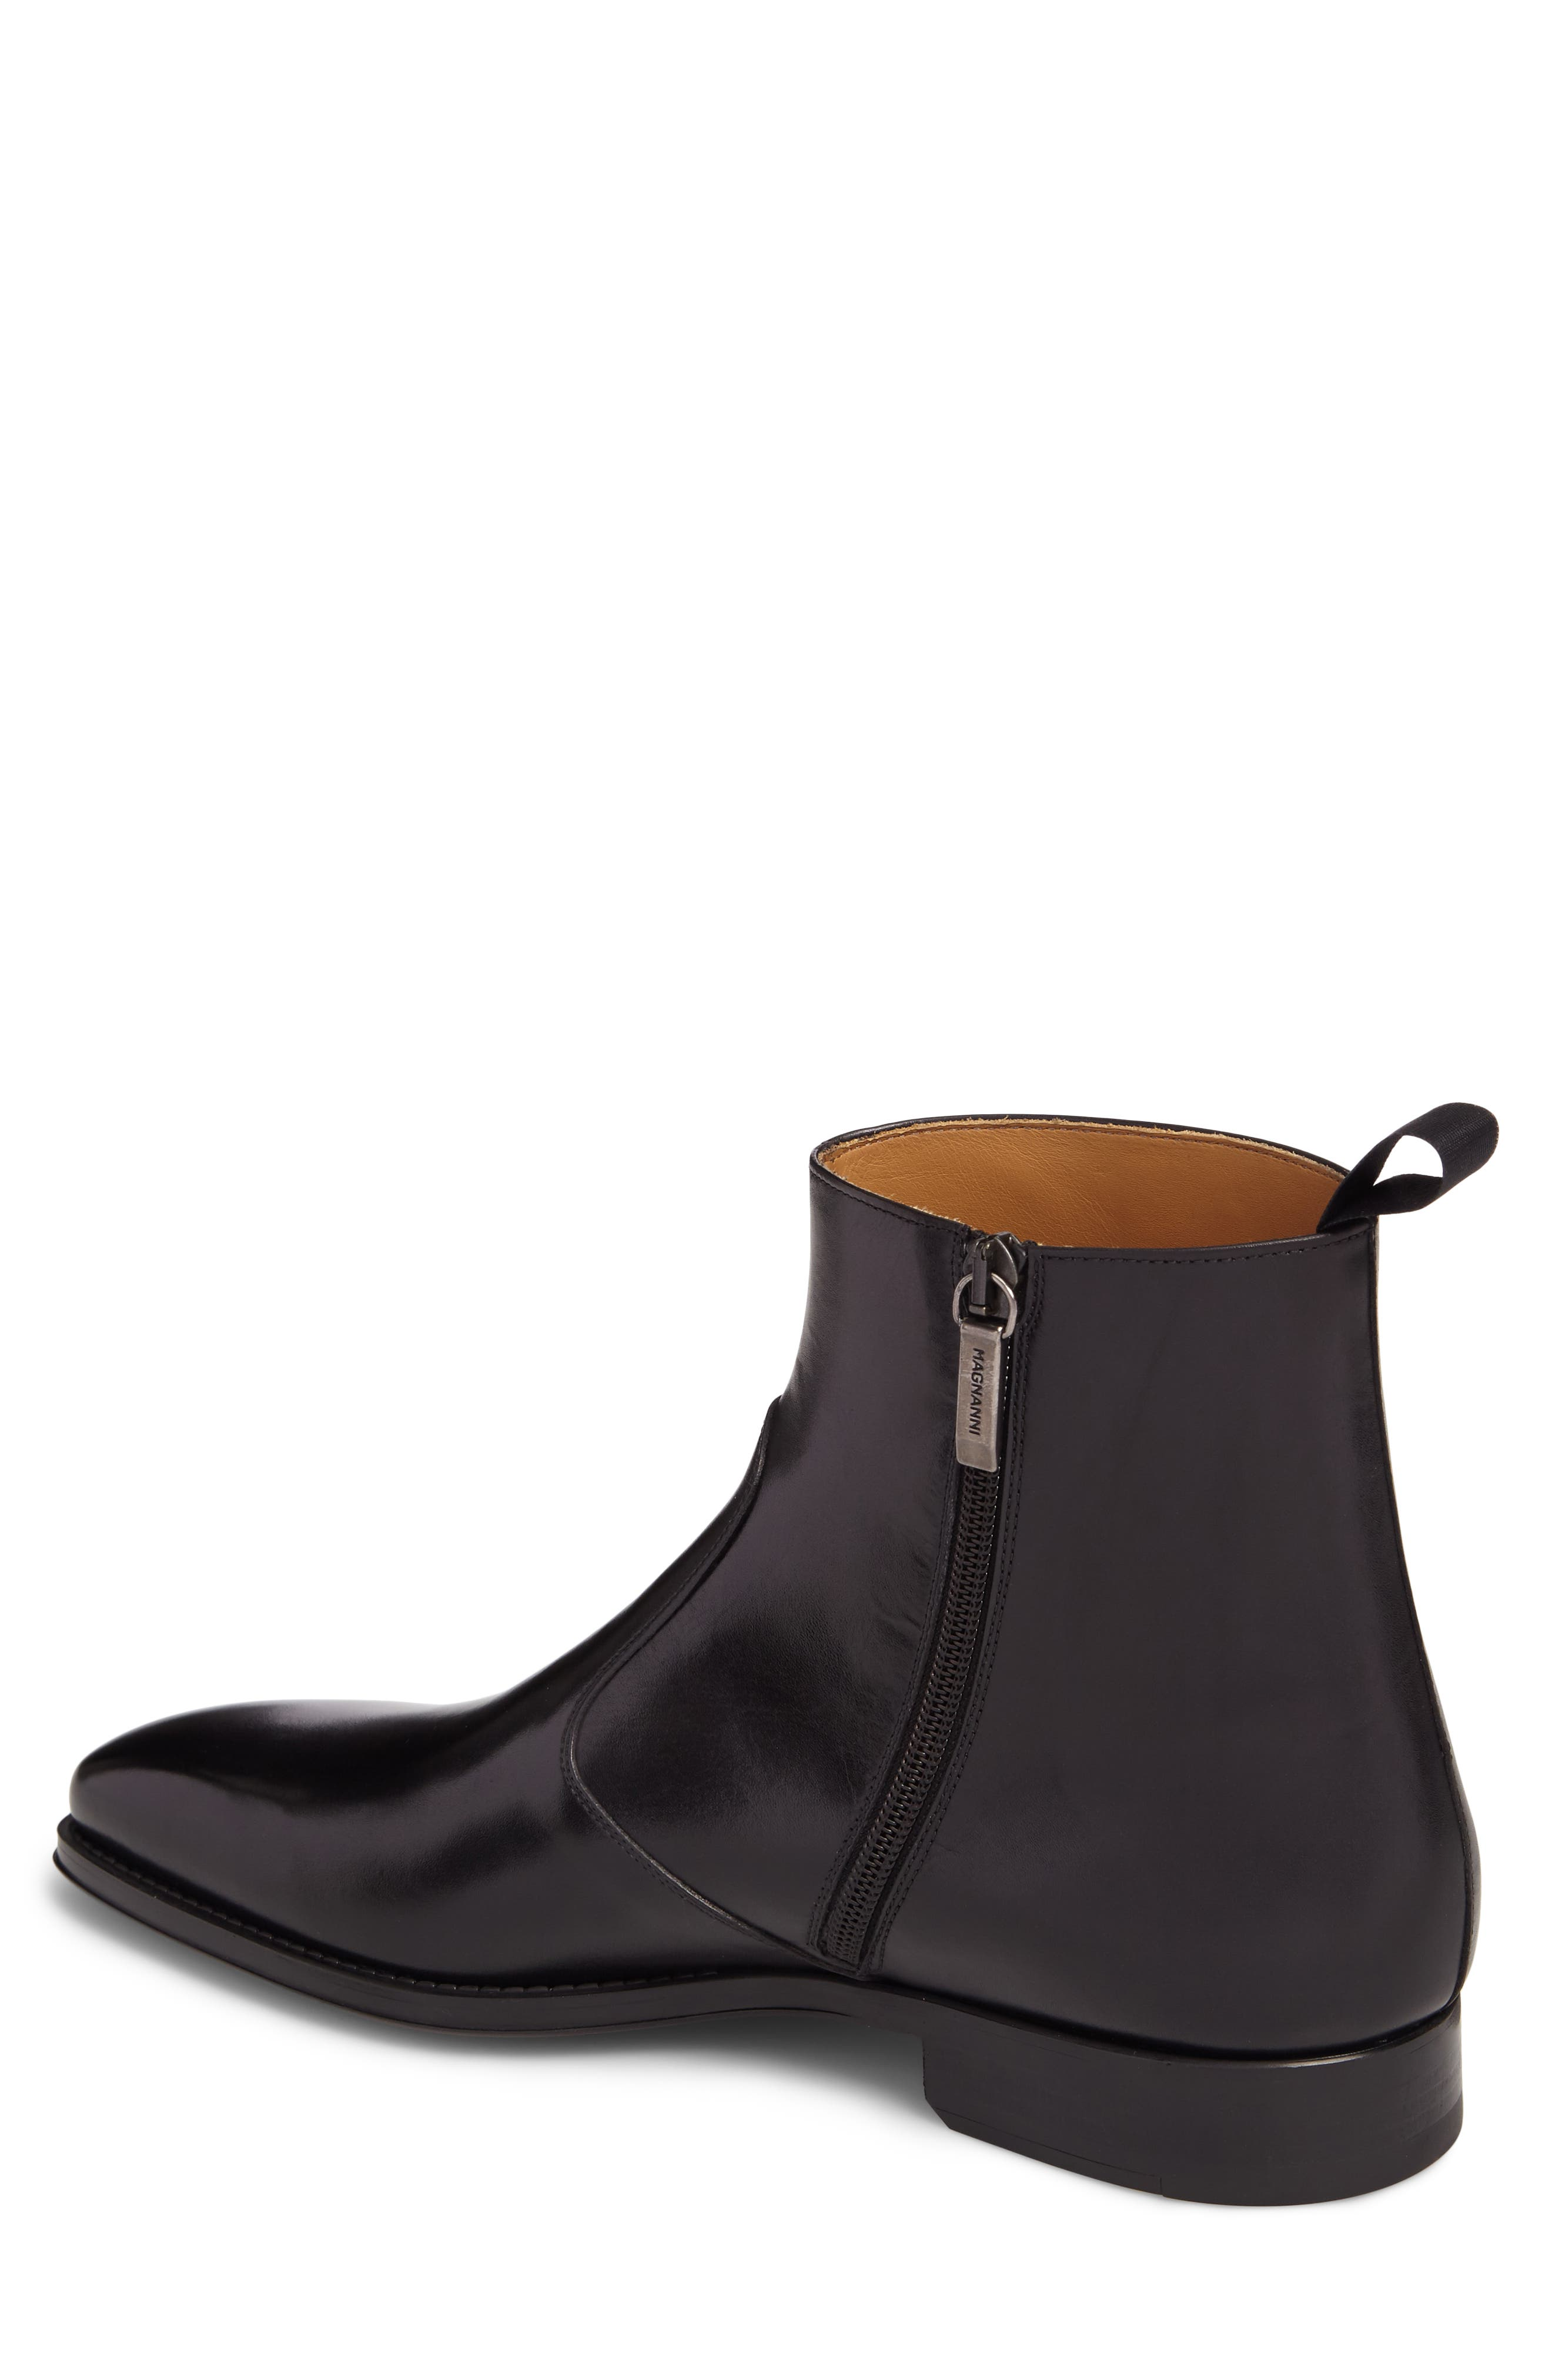 Rosdale Zip Boot,                             Alternate thumbnail 2, color,                             Black Leather